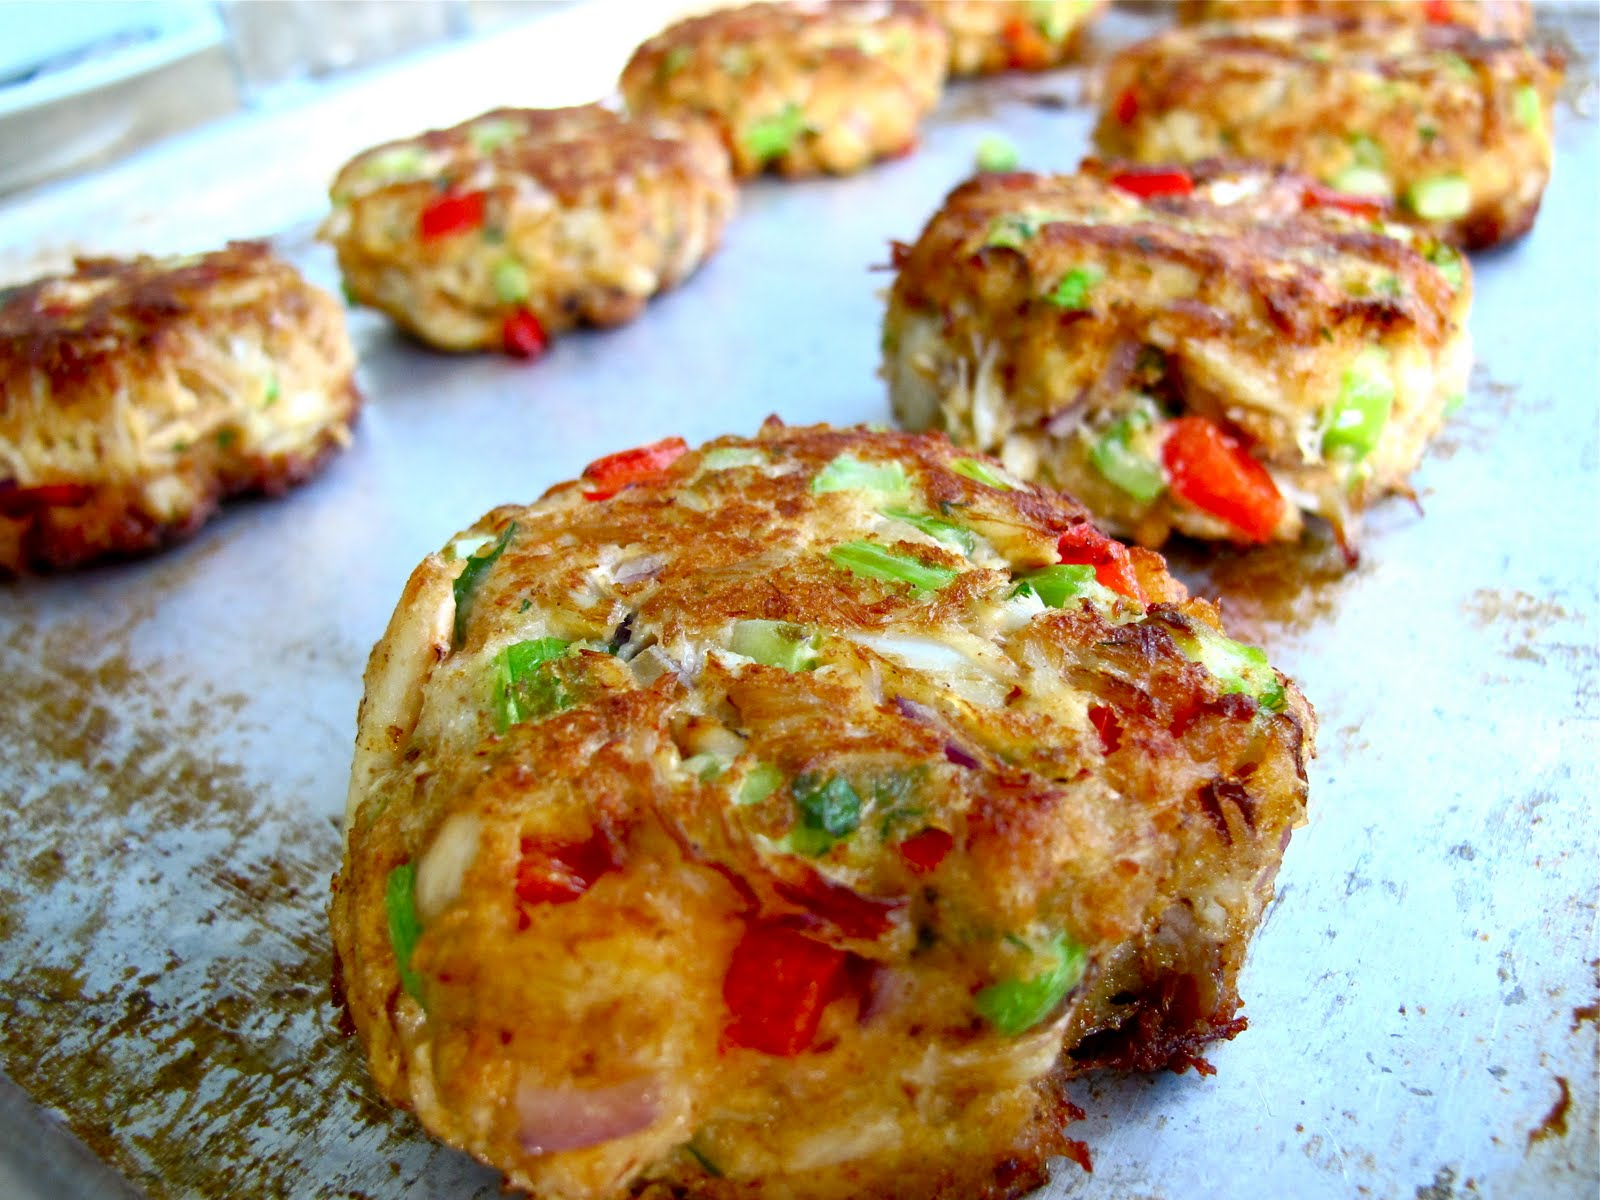 Crab cakes recipe made with panko